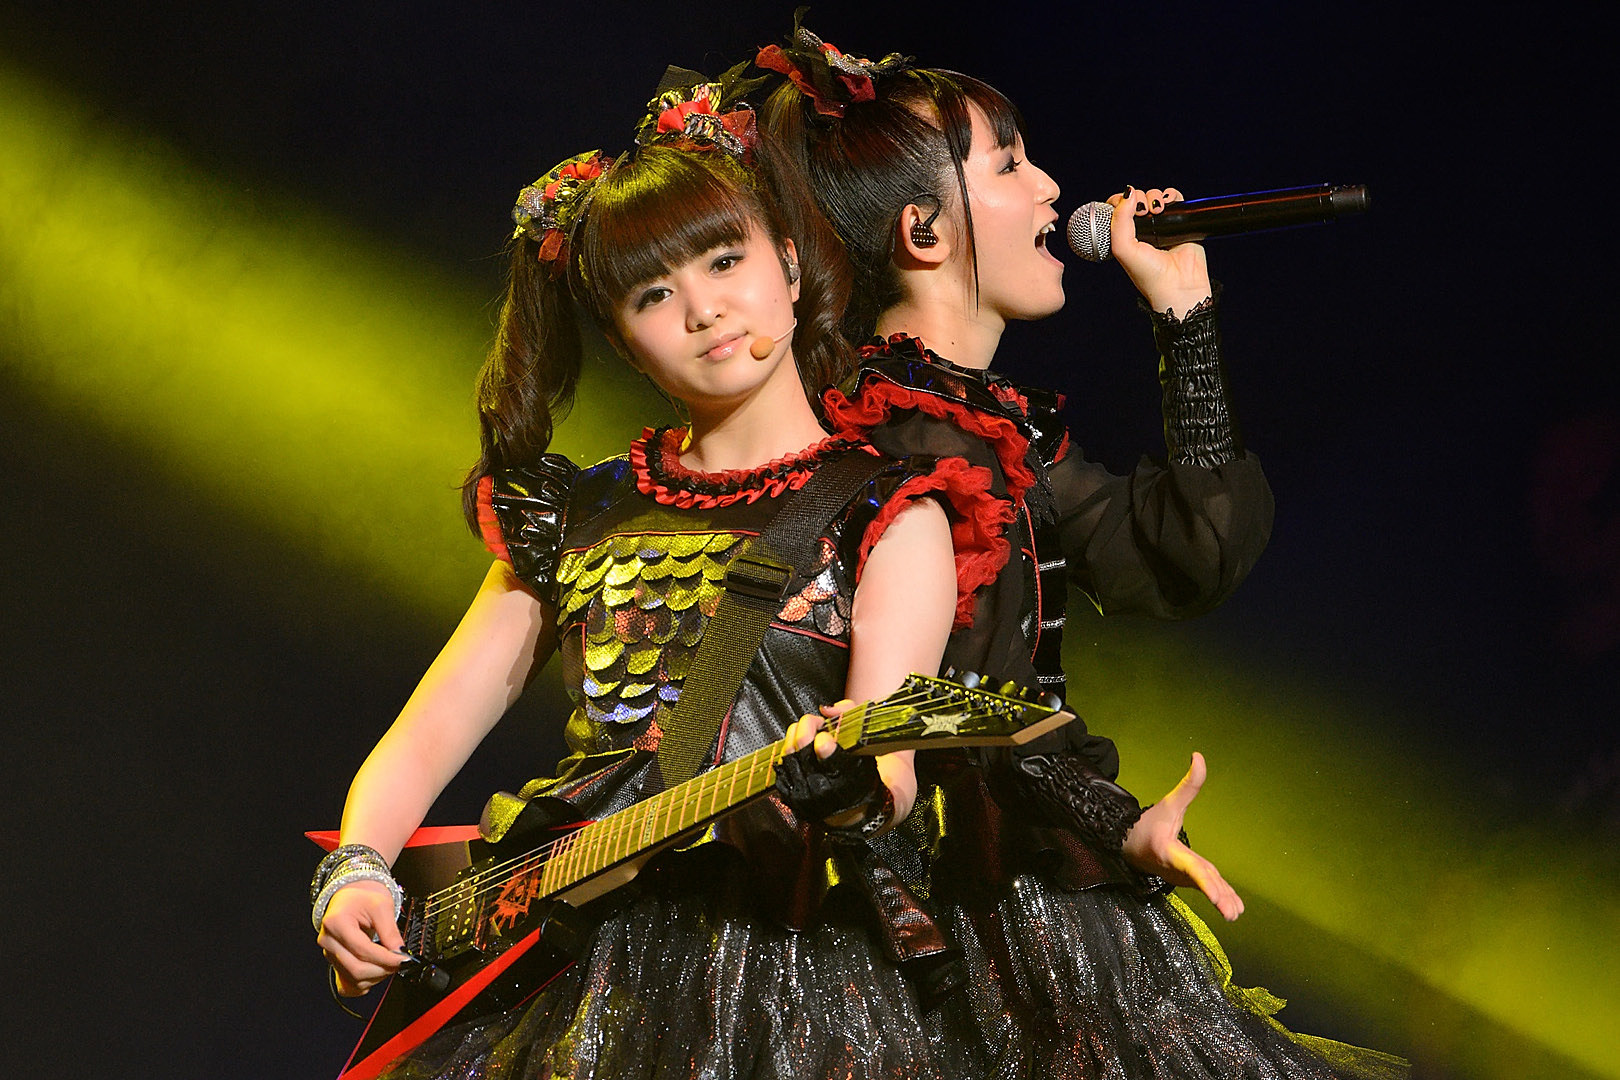 A New Babymetal Album Is Coming in 2019